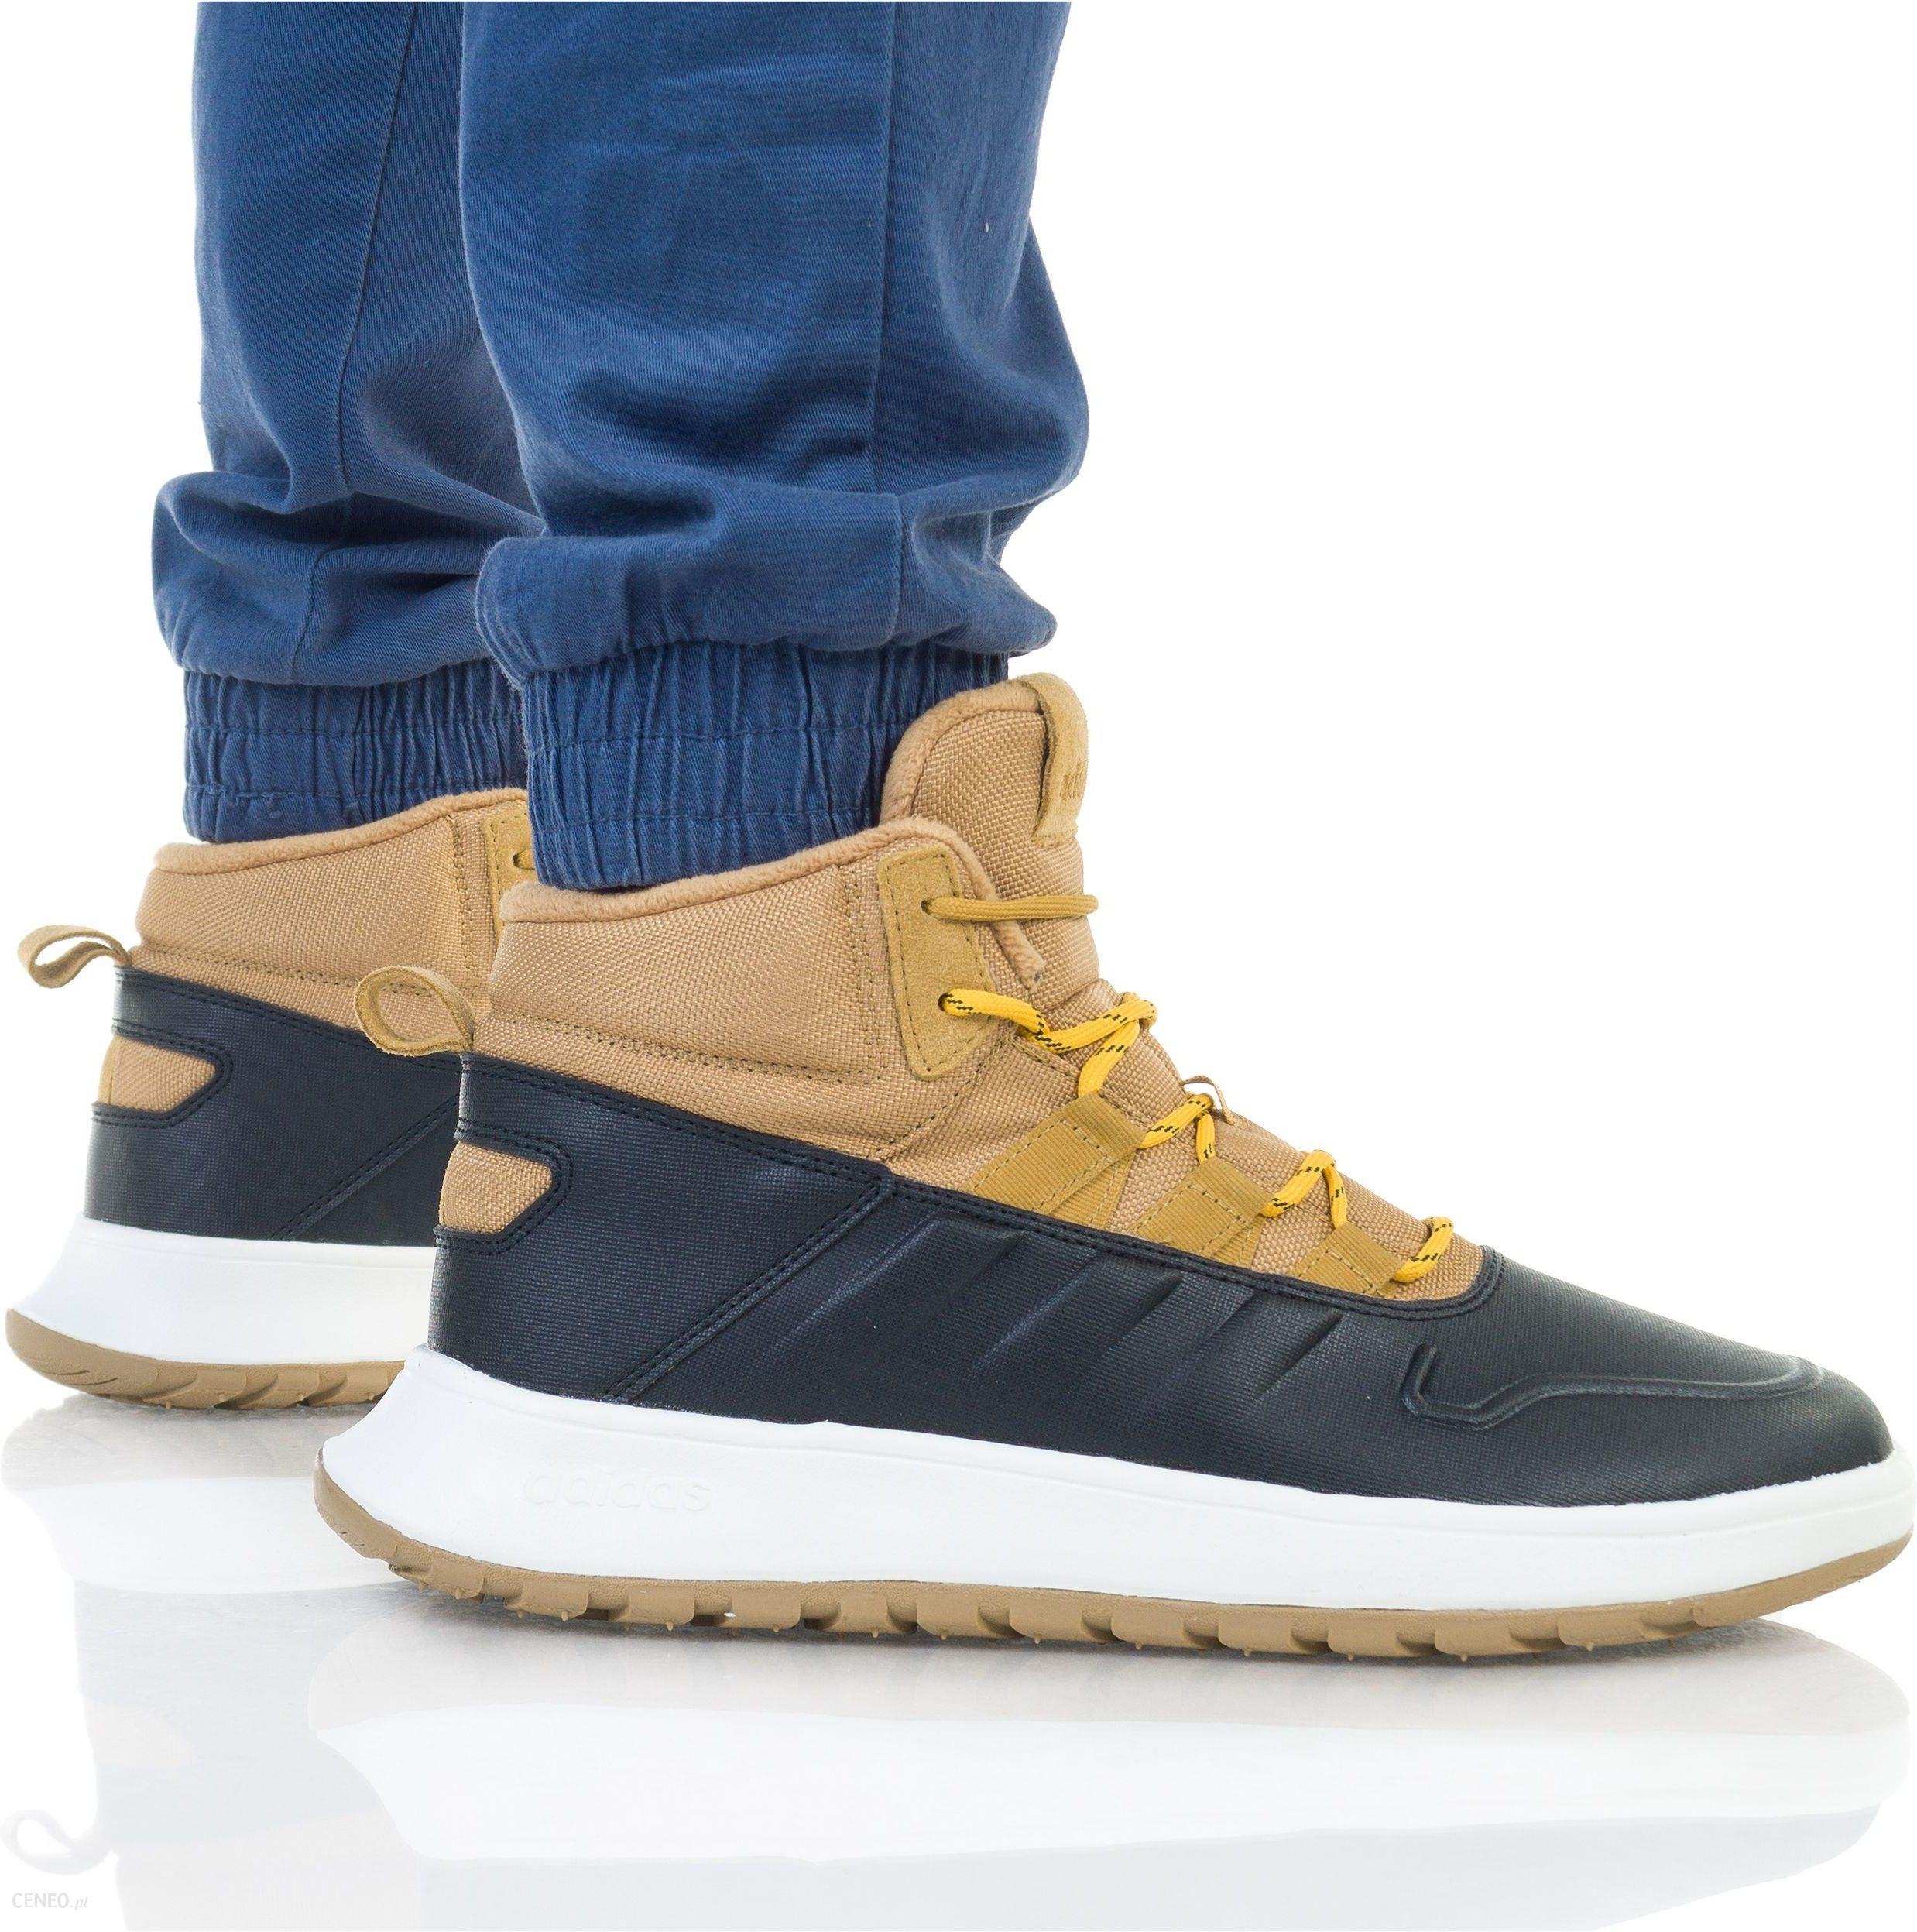 Buty m?skie Adidas Fusion Storm Wtr EE9708 Ceny i opinie Ceneo.pl